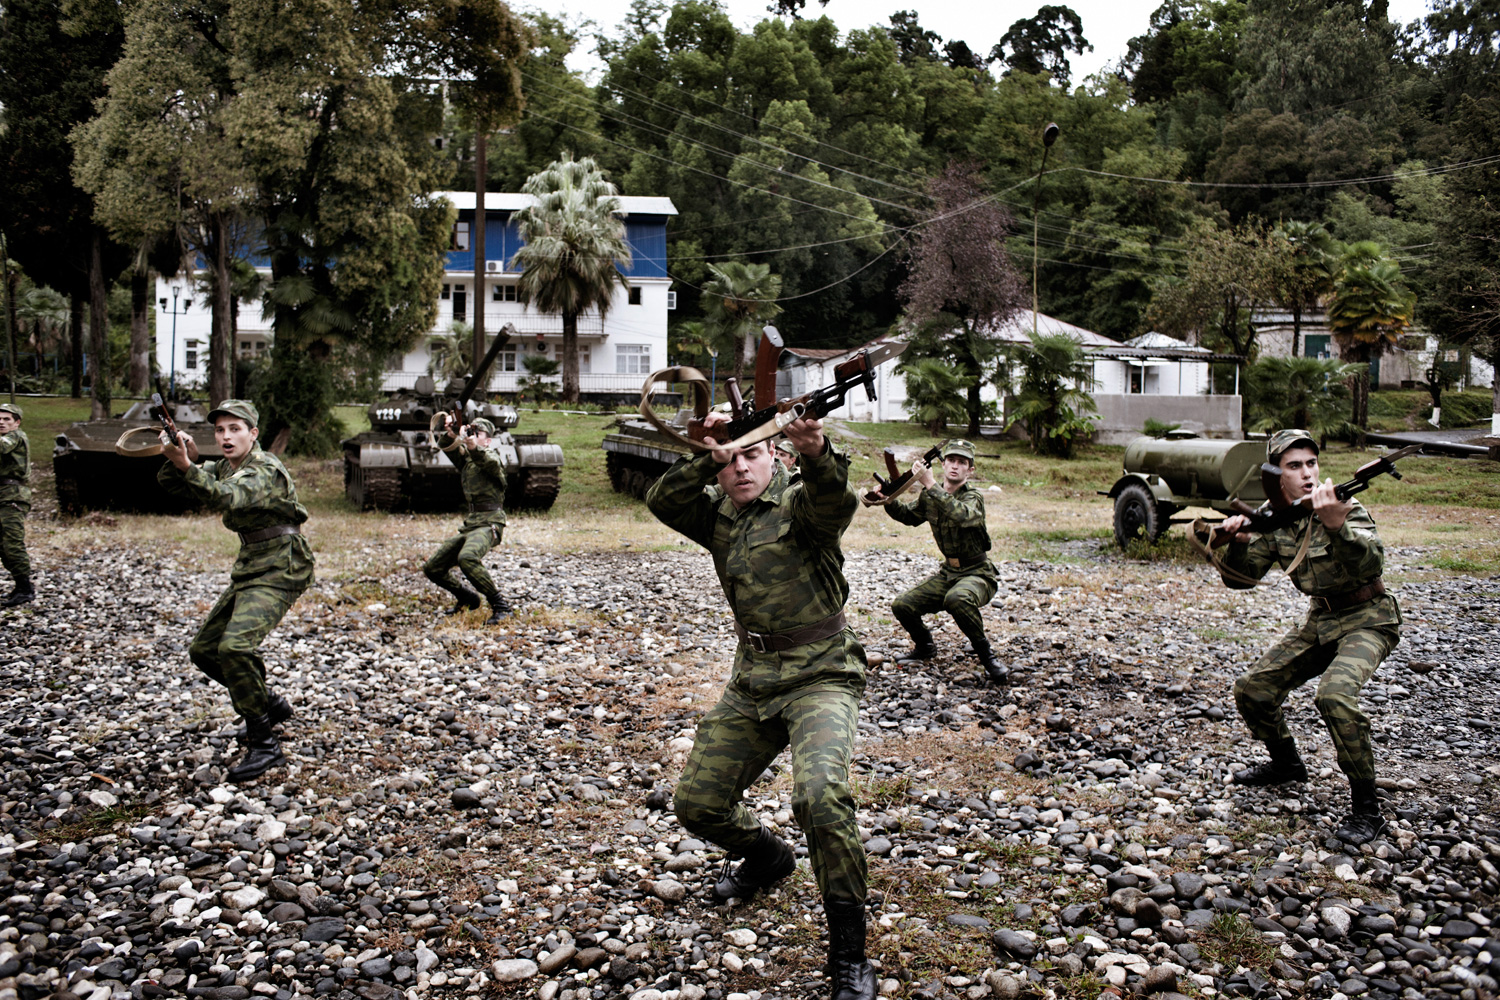 Abkhaz soldiers train at the Military Academy in Sukhumi. Abkhazia's regular forces are believed to be small, with estimates of the standing army ranging from 1,000 to 5,000.